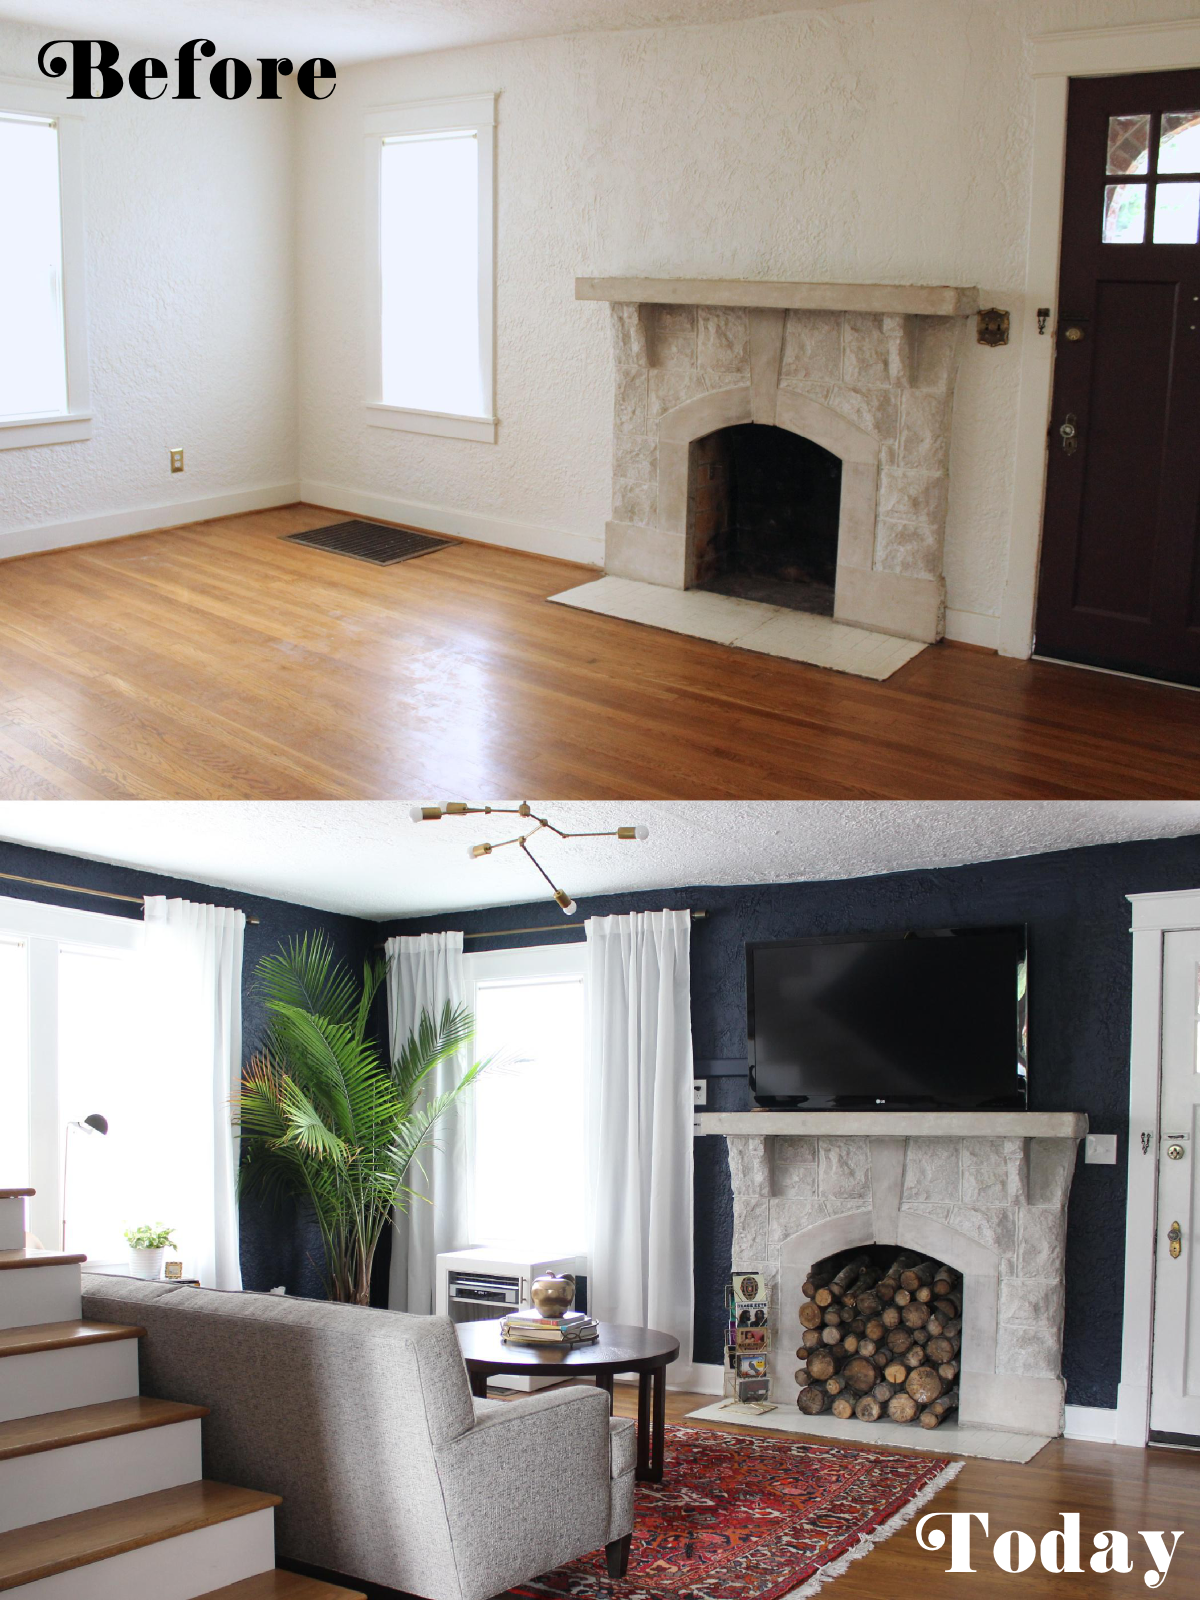 Fabric Paper Glue | Living Room Before and After